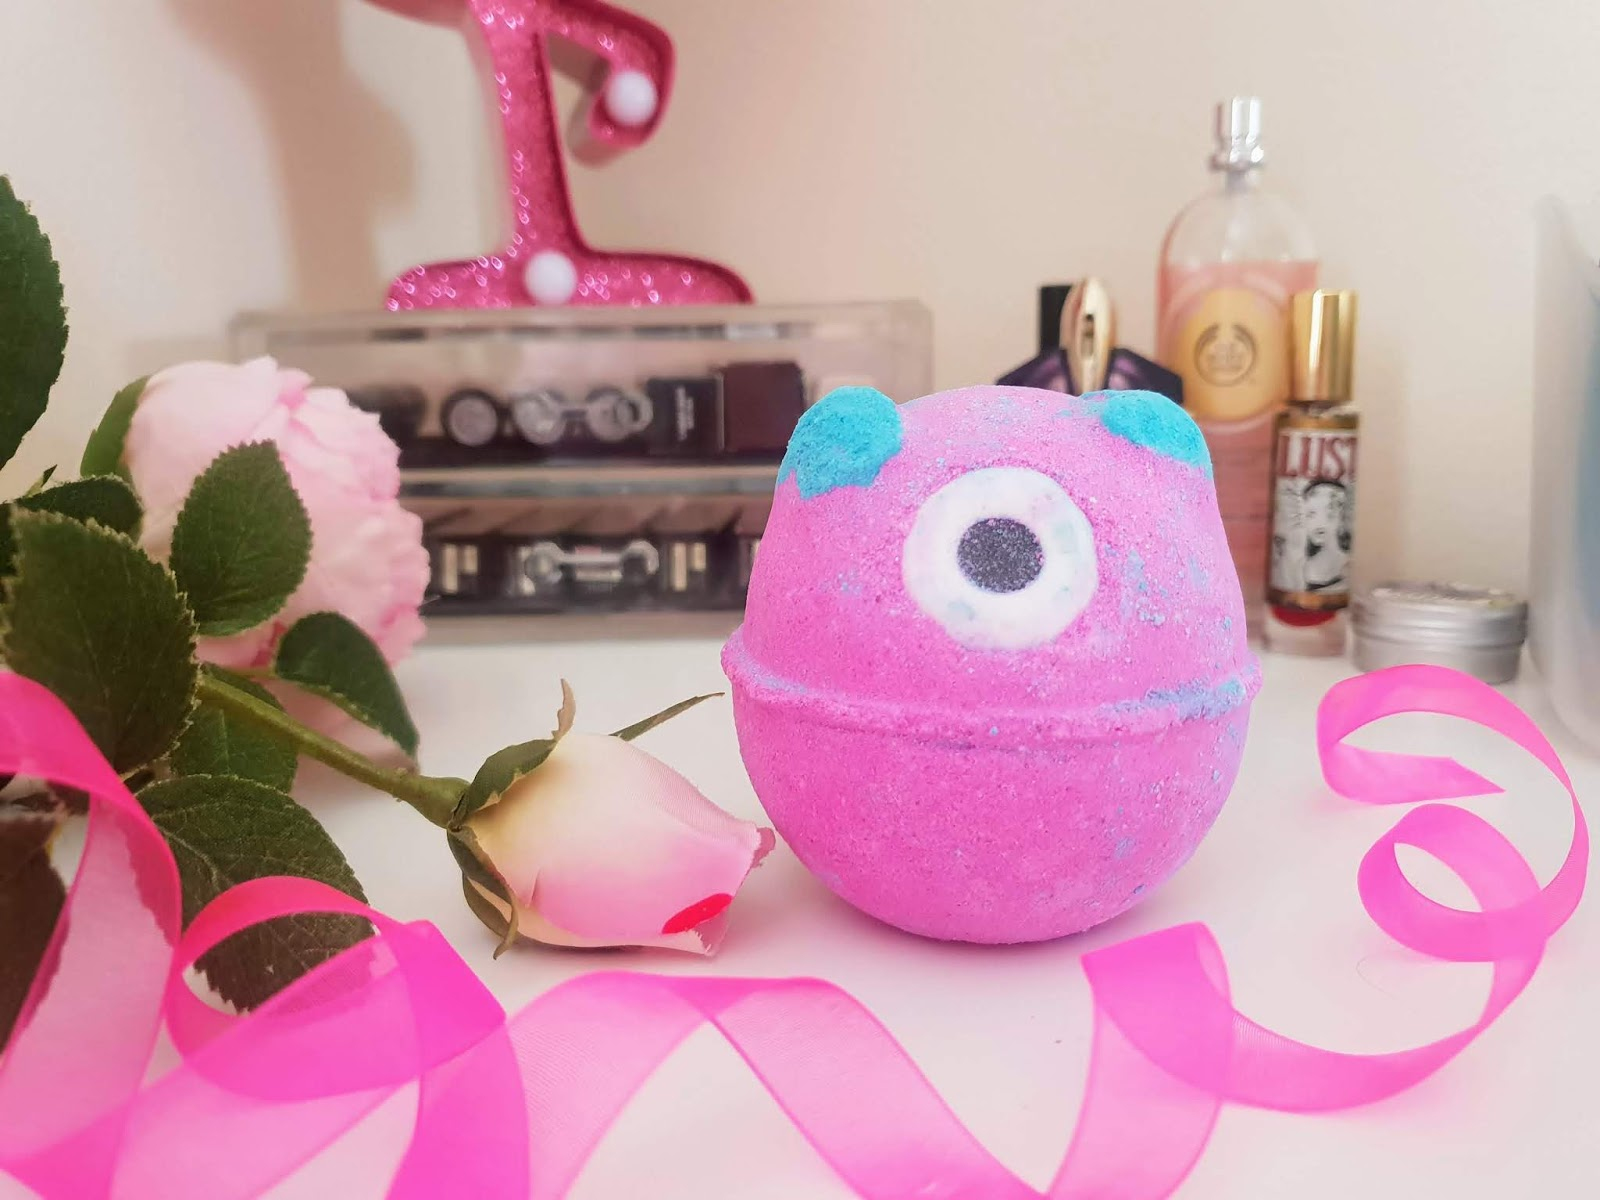 Lush monsters ball review